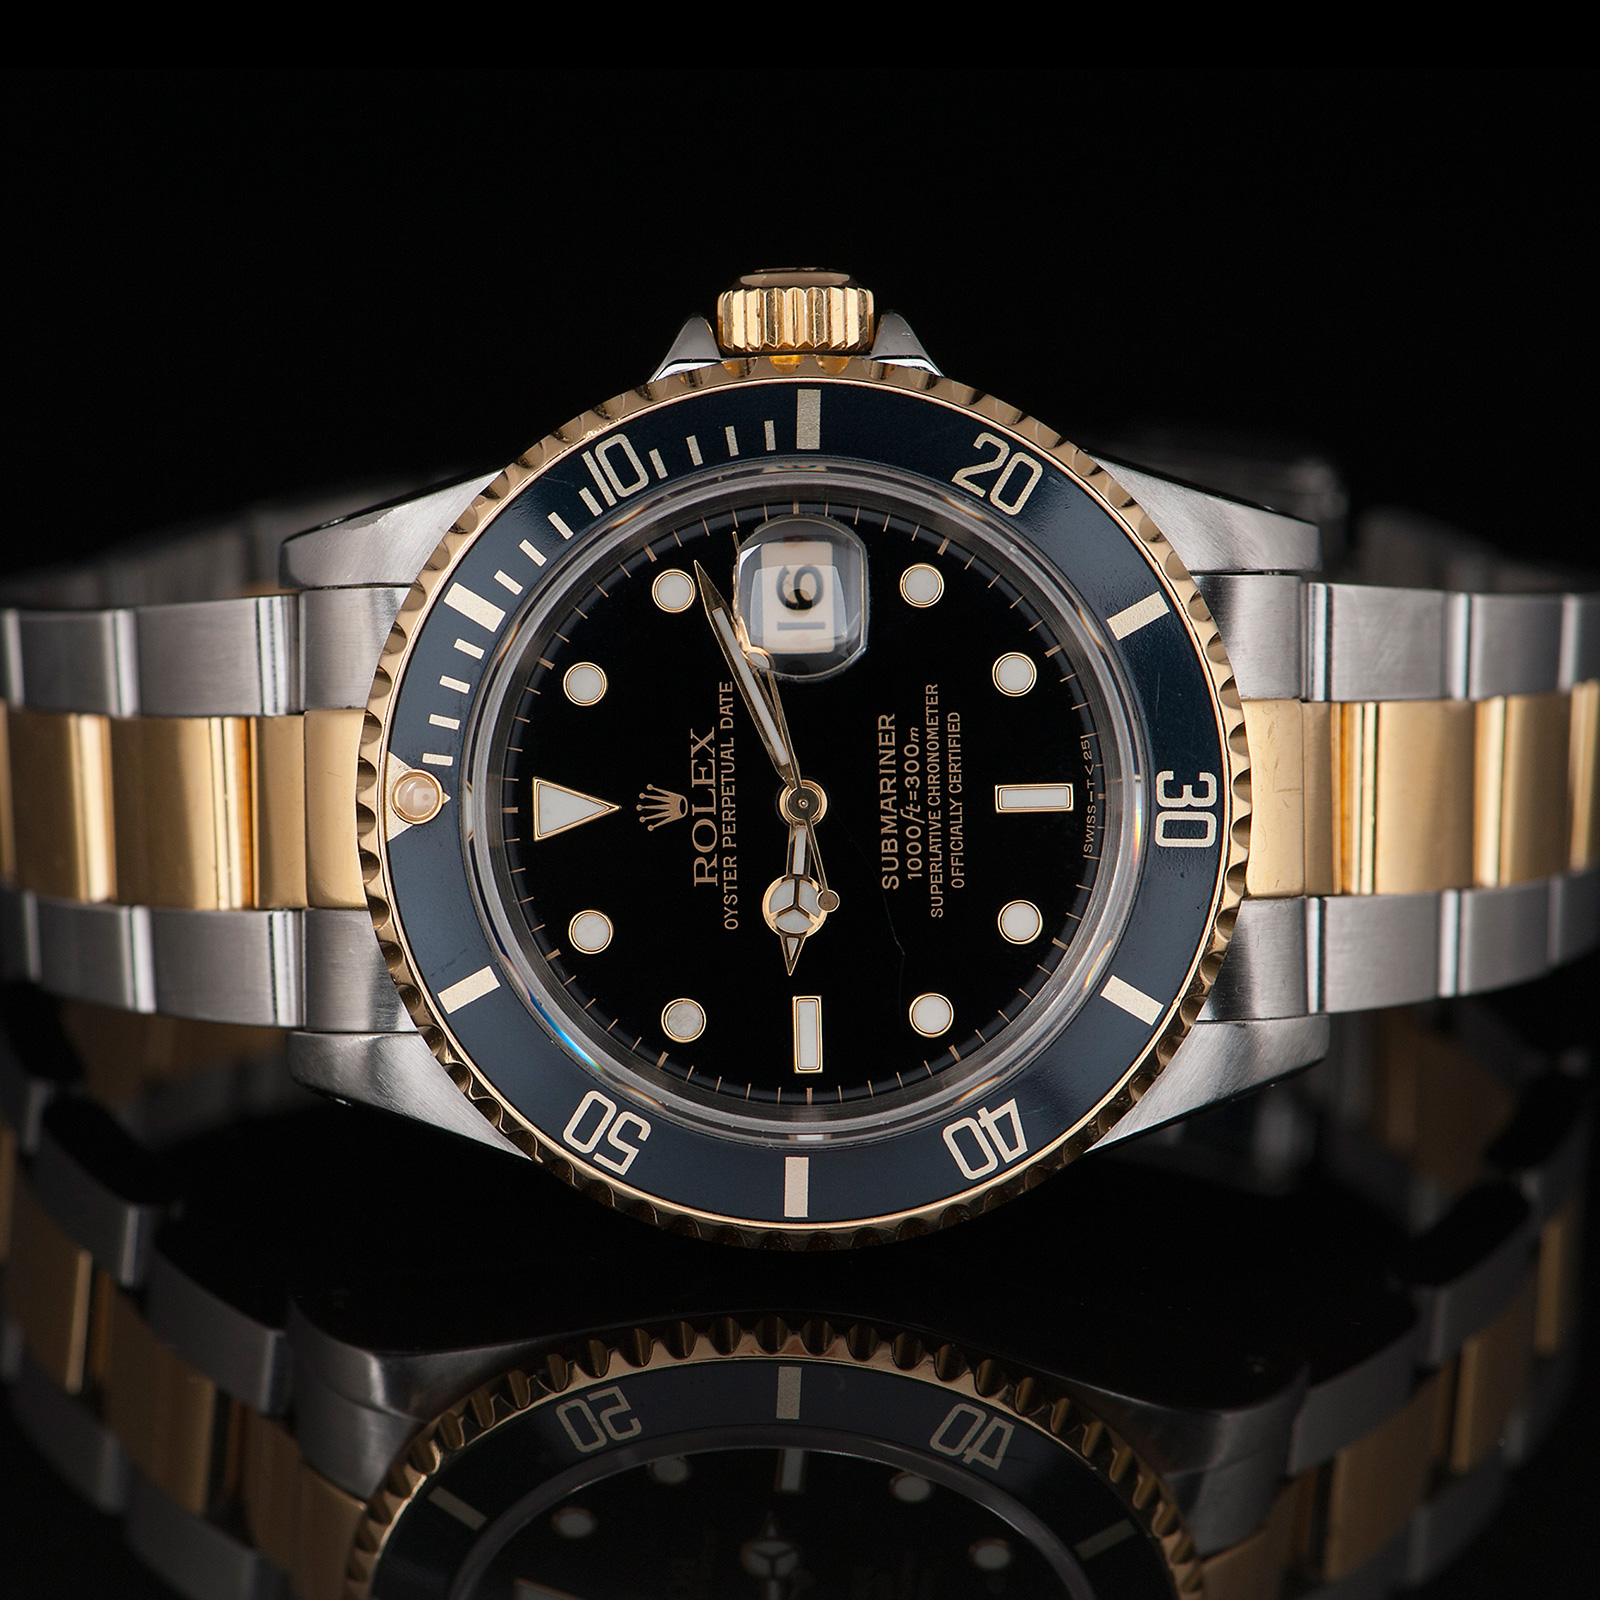 Rolex Submariner Date Ref 16613LN Two,tone gold/steel , 40mm